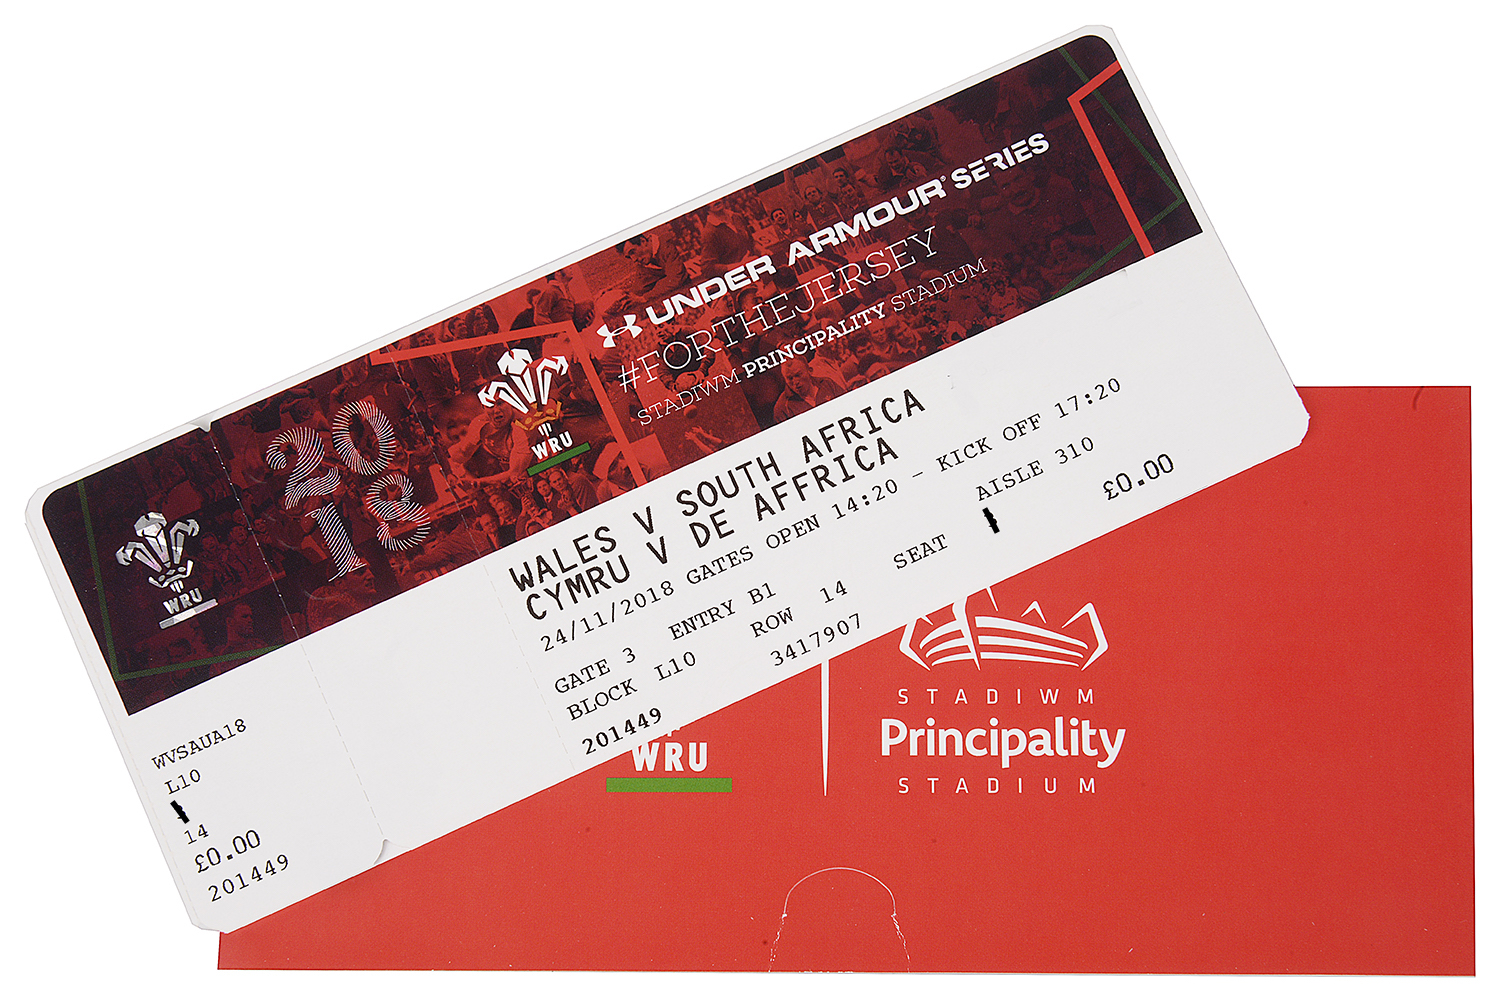 Lot 62 - **Wales vs. South Africa Rugby Game With Richard Madley